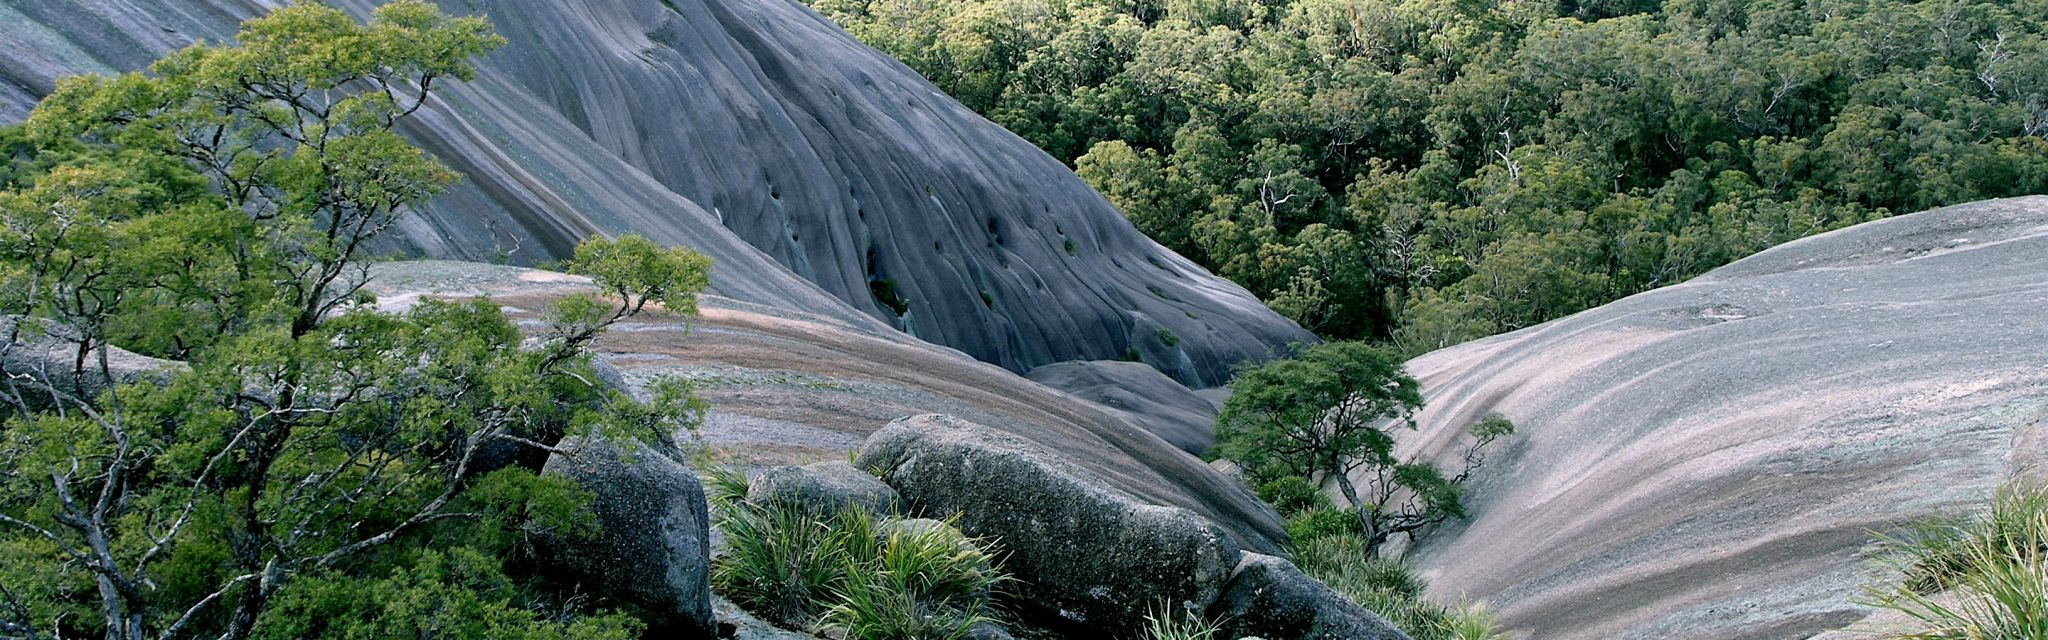 Slopes of Bald Rock monolith, a feature of Great Divide and Australia World HeritageTour